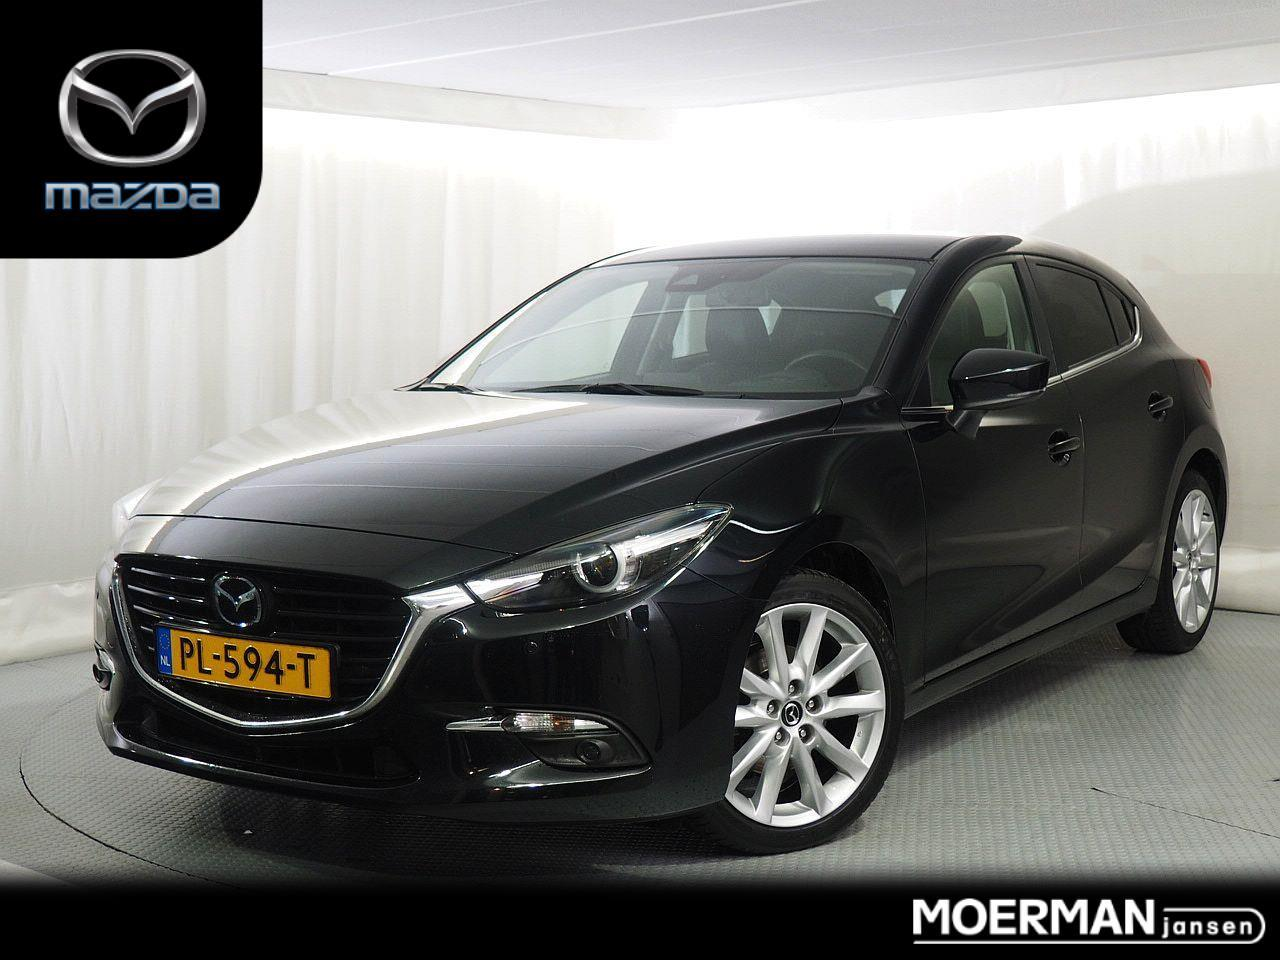 Mazda 3 2.0 gt-m automaat / navigatie / head-up display / leder / bose install. / 1e eig /  dealeronderhouden